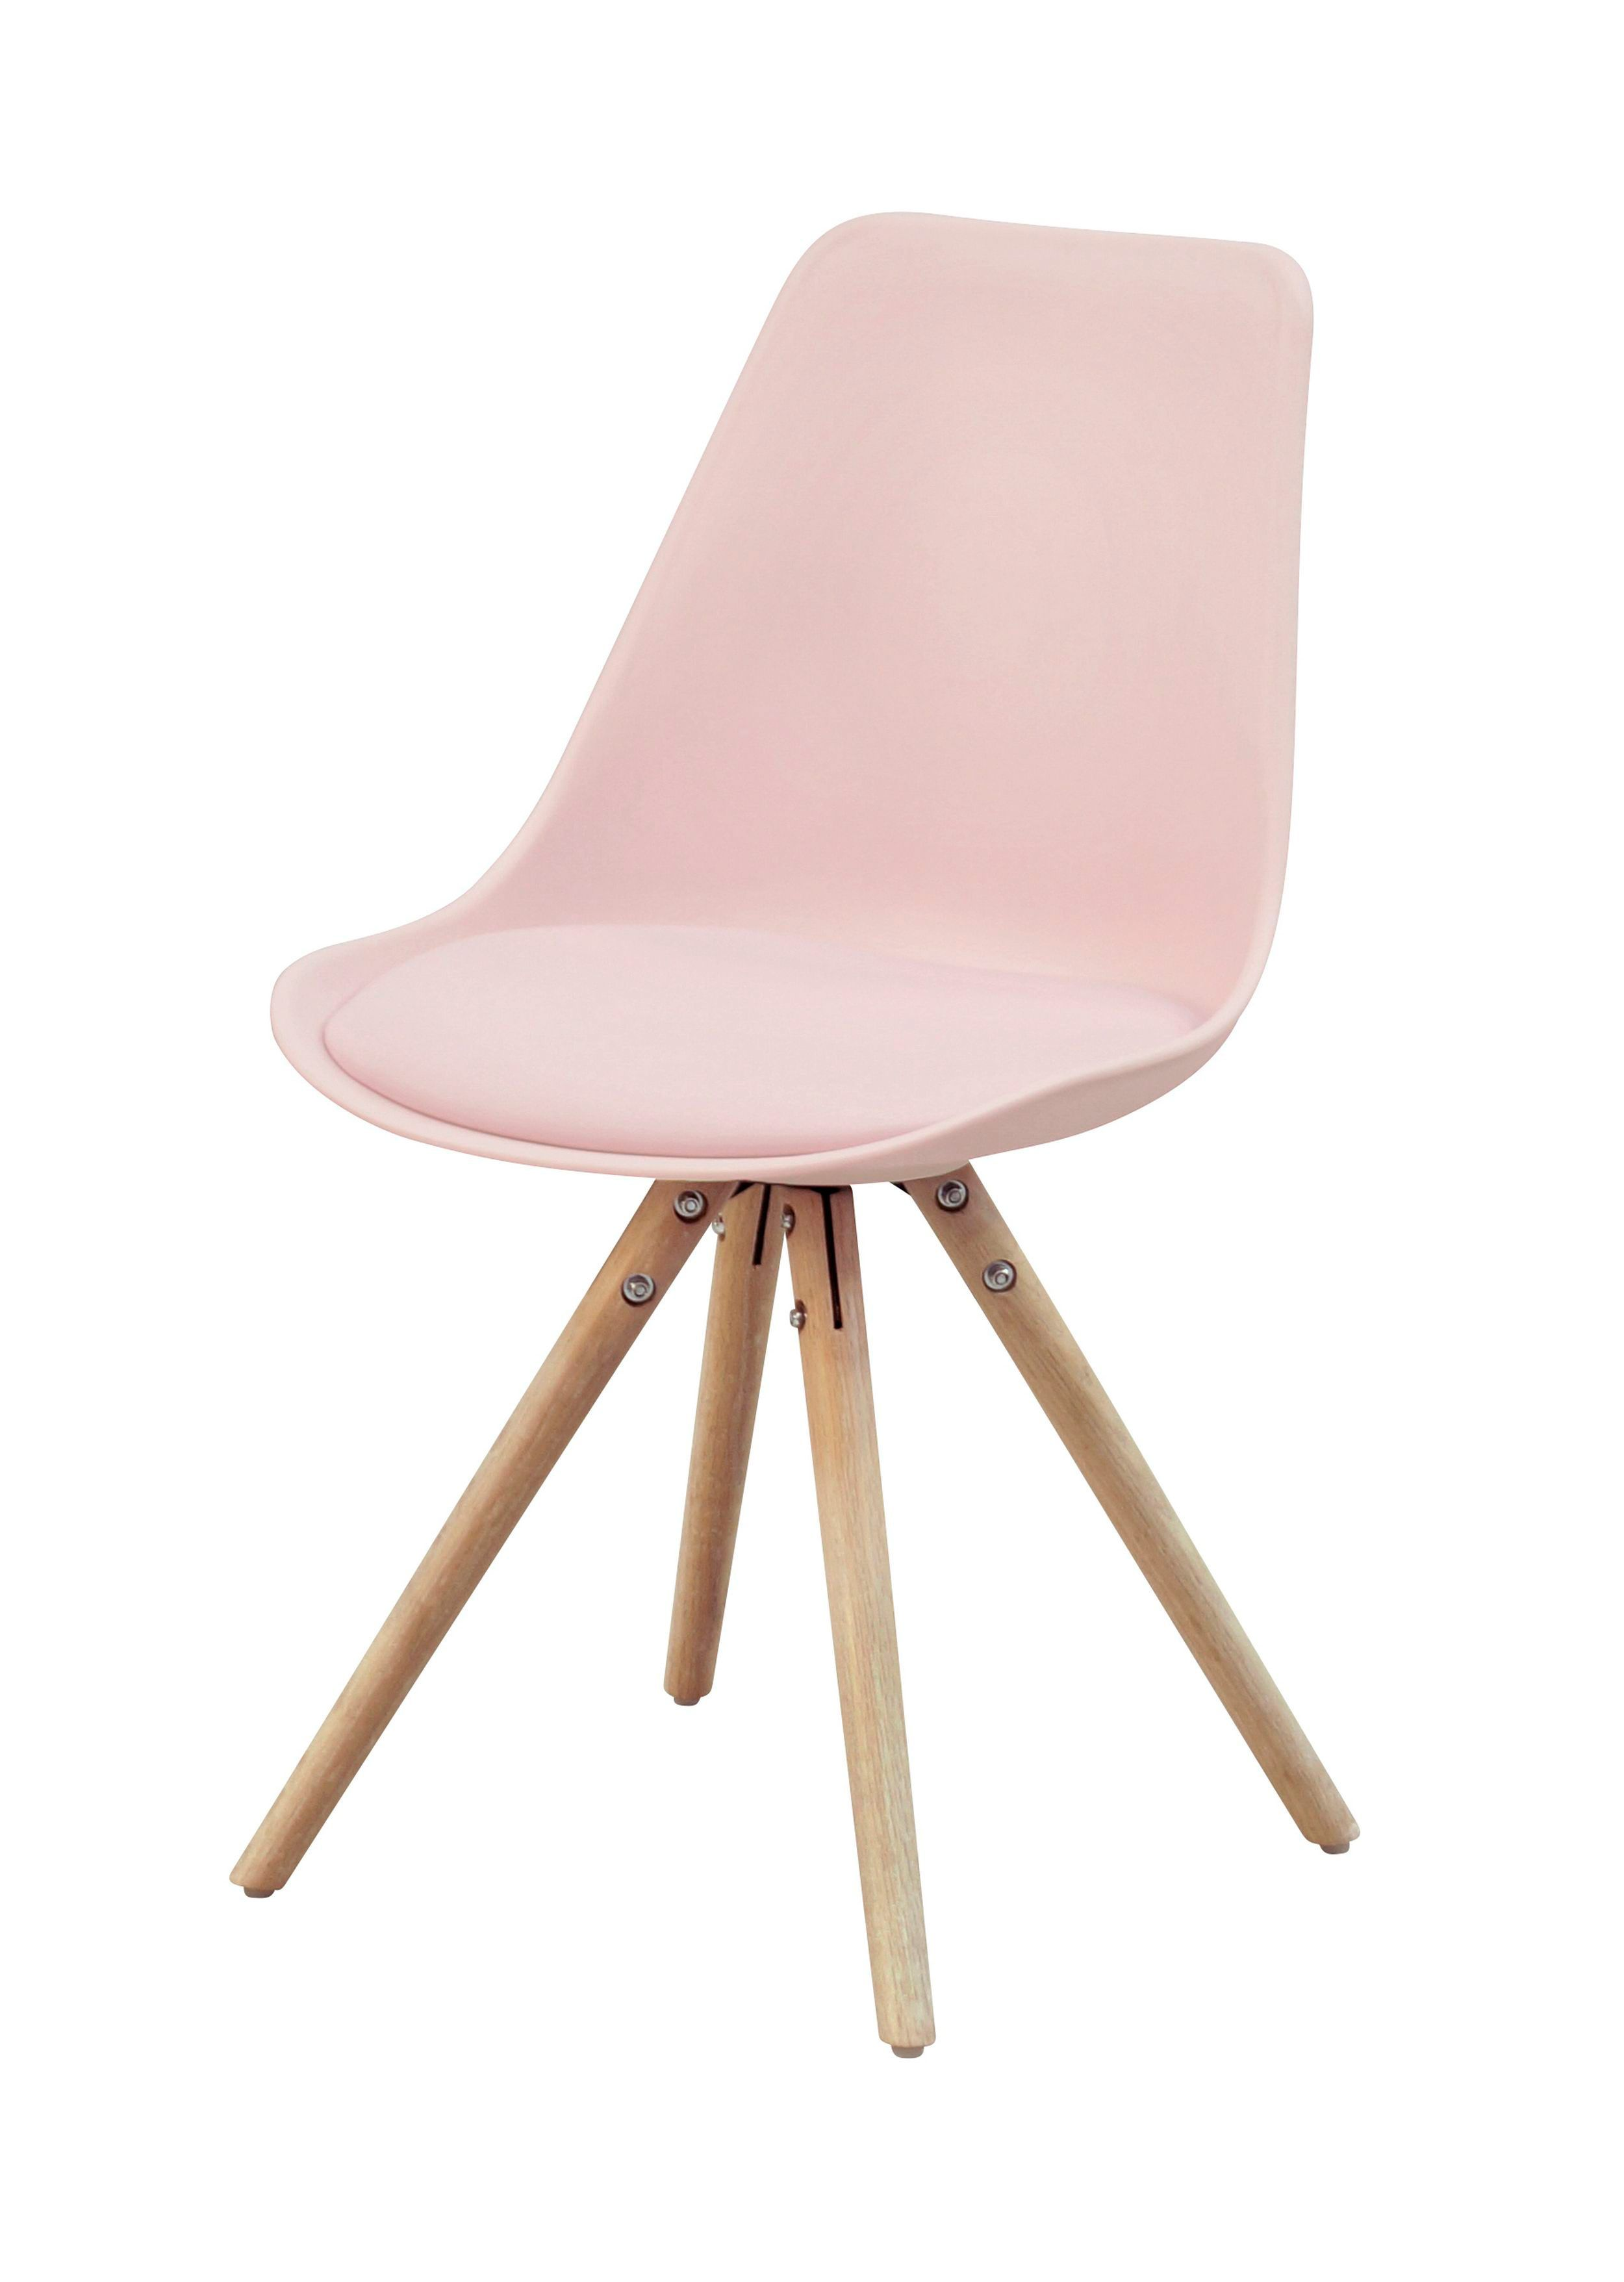 Chaise OSLO rose design scandinave BUT